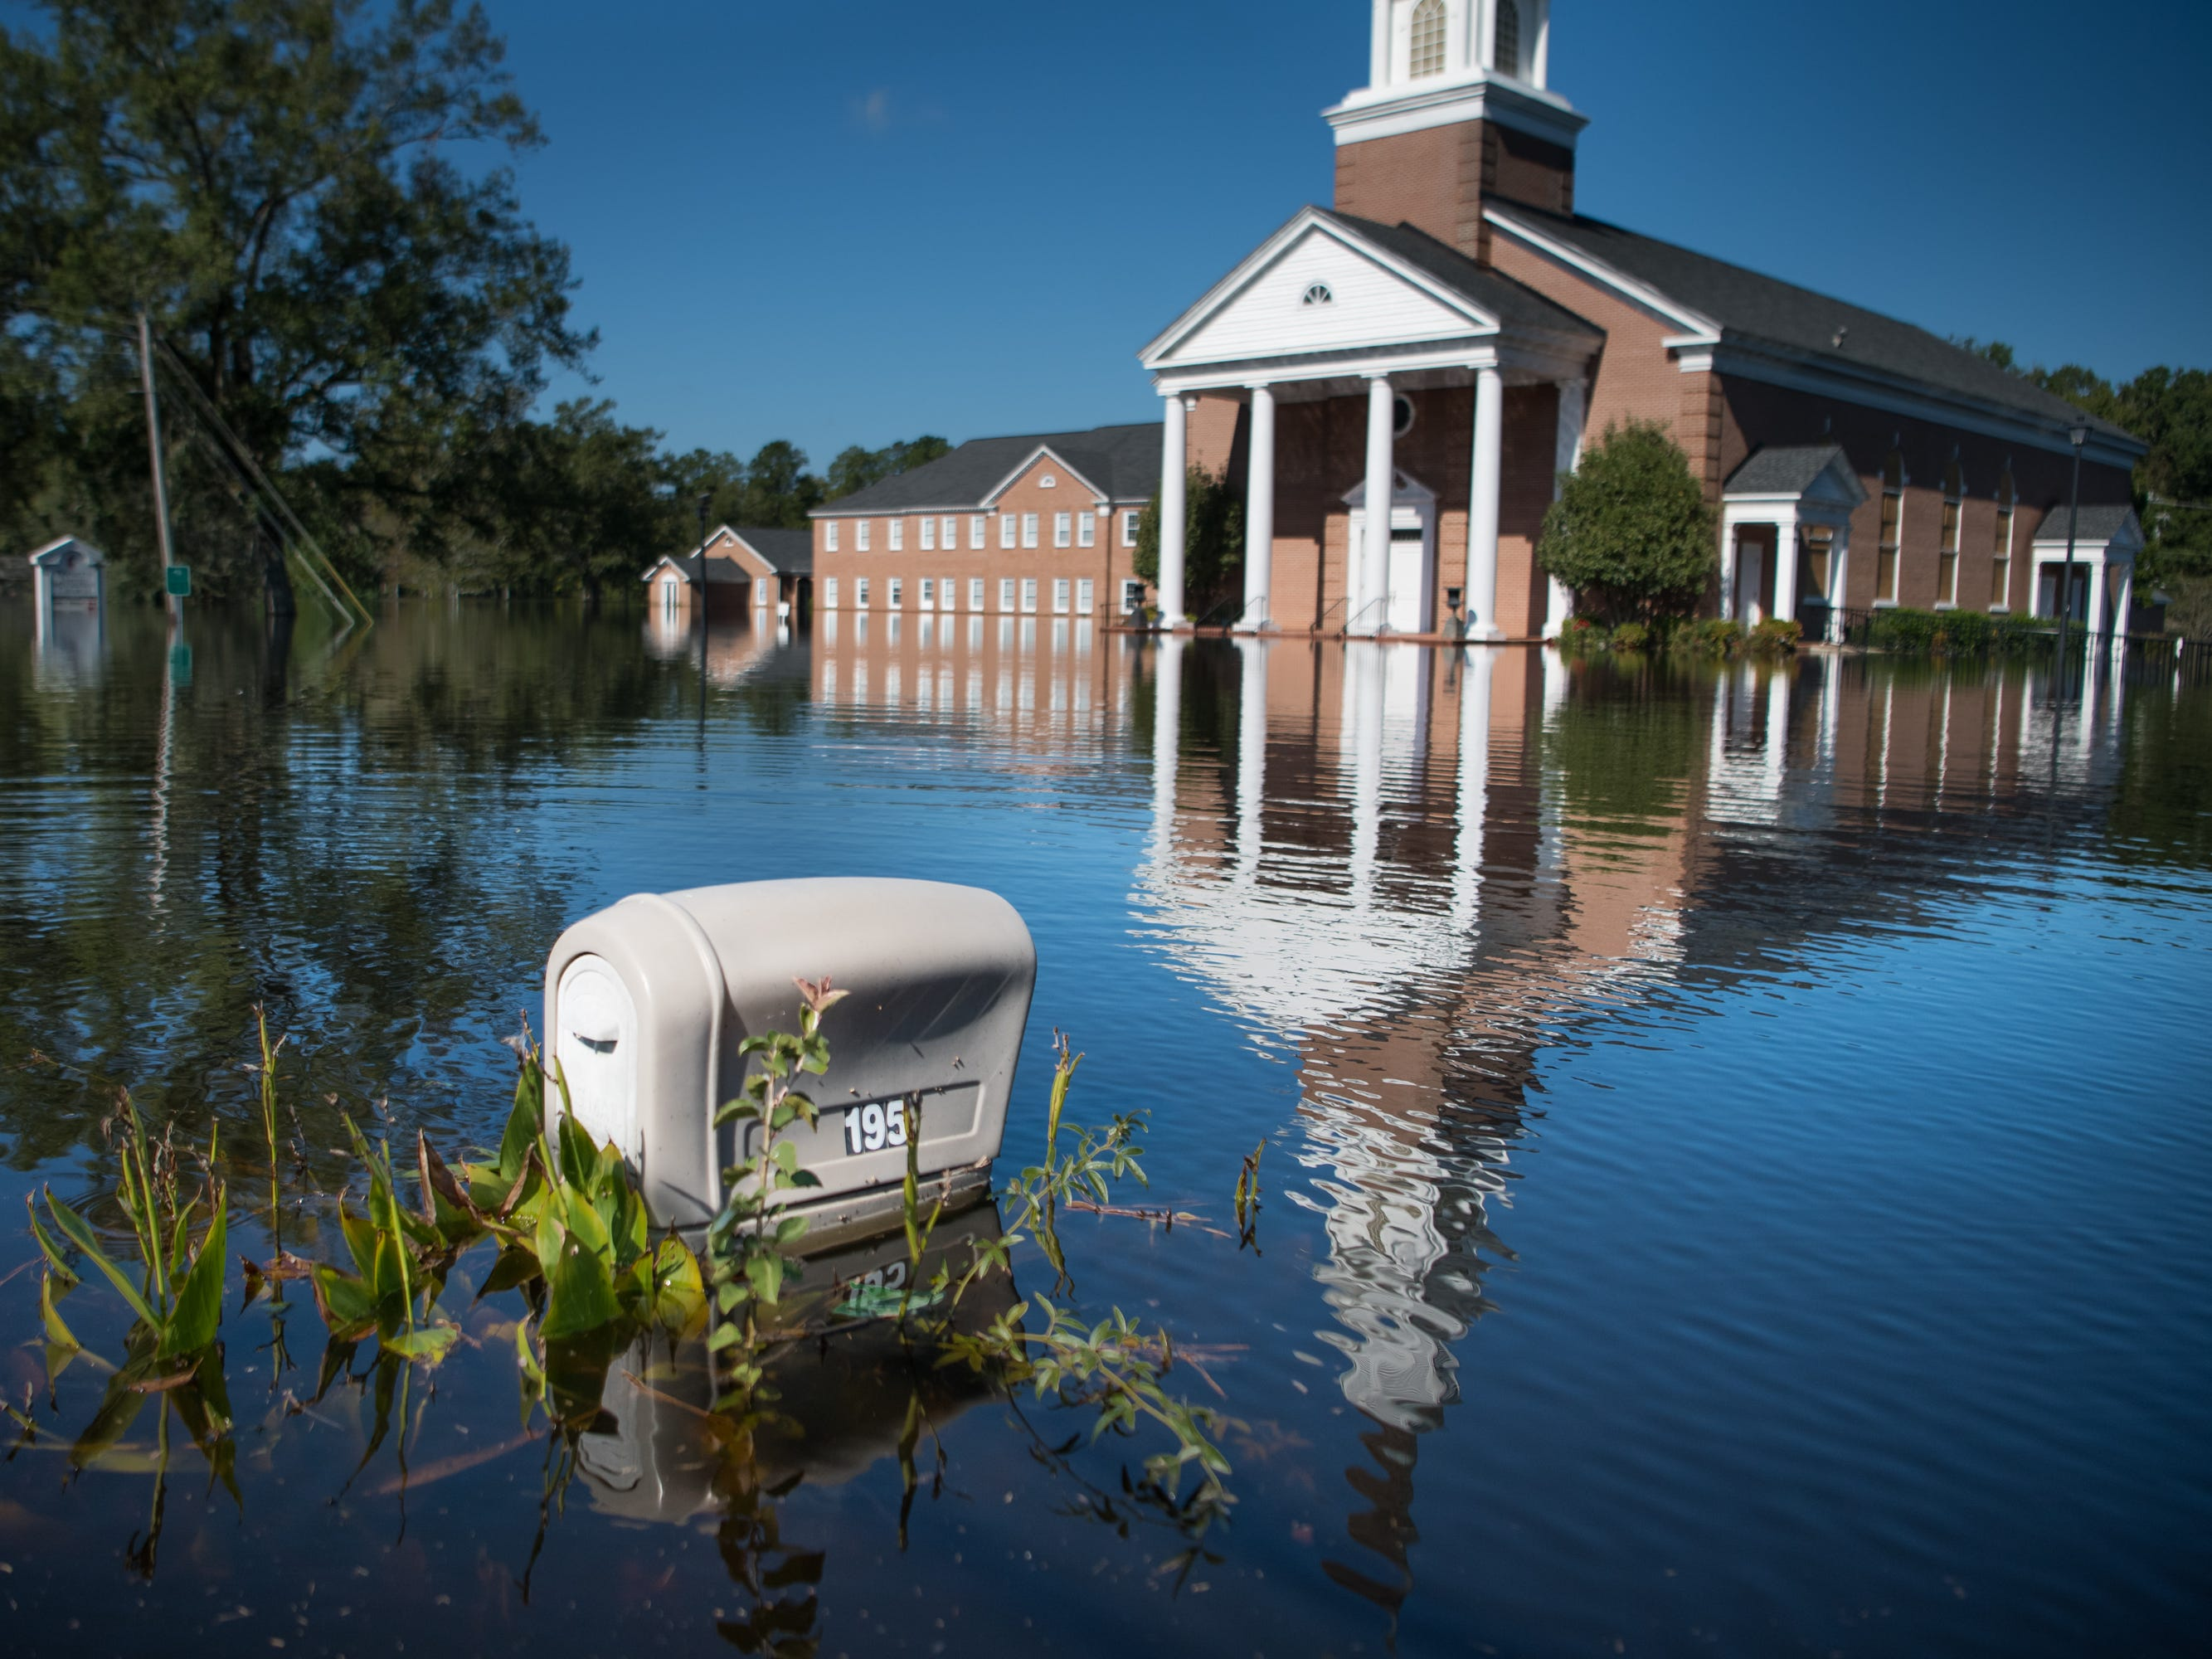 Trinity United Methodist Church is inundated by floodwaters caused by Hurricane Florence near the Crabtree Swamp on Sept. 26, 2018 in Conway, S.C.